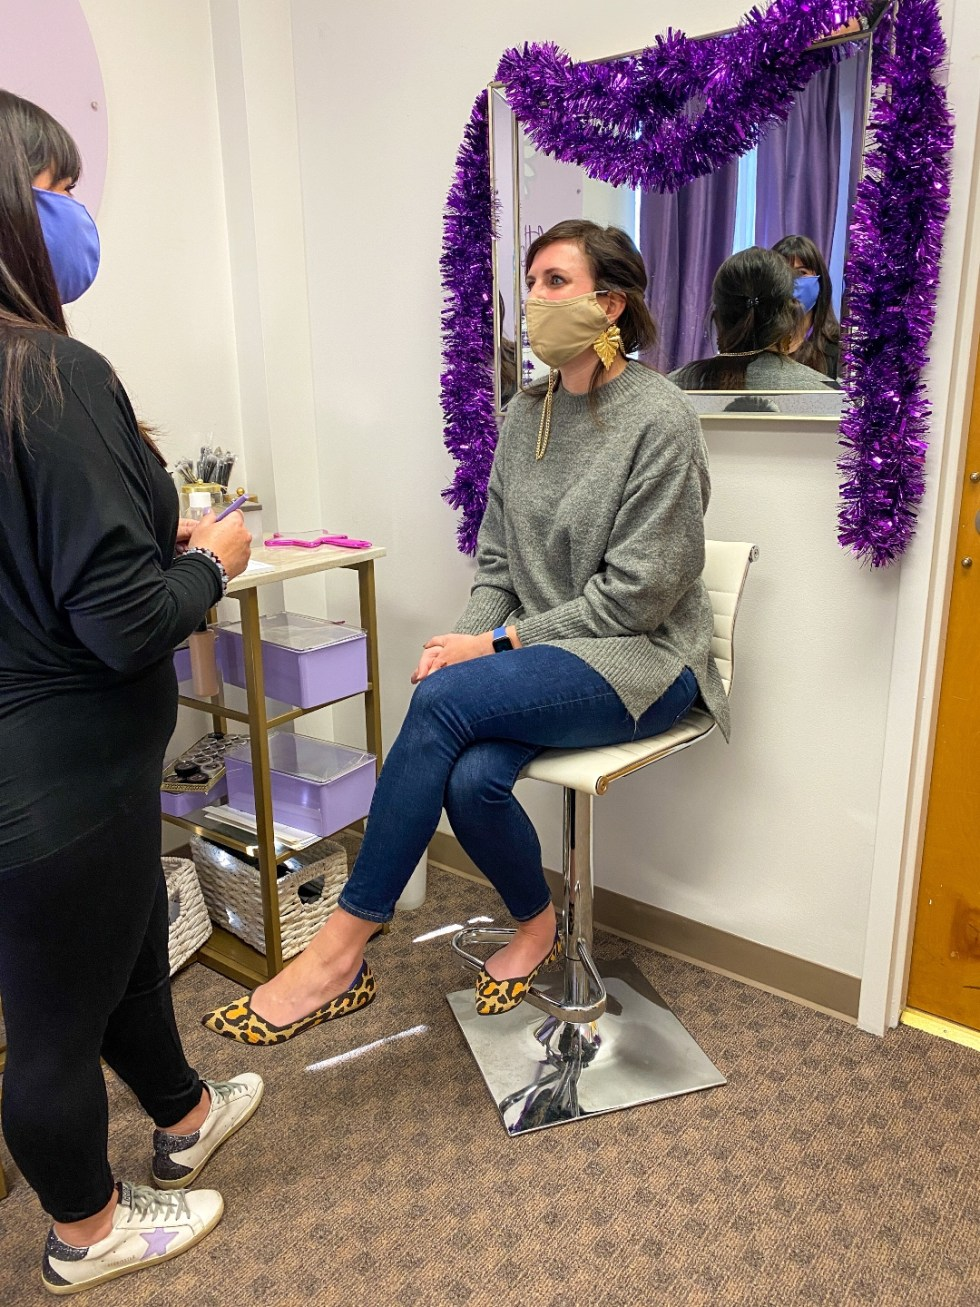 A Custom Foundation Blend at Colette Skincare - I'm Fixin' To - @imfixintoblog |Custom Foundation Blend by popular NC beauty blog, I'm Fixin' To: image of a woman sitting in a white barstool chair in front of a mirror decorated with purple tinsel at Colette Skincare and talking to a makeup consultant wearing an all black outfit.